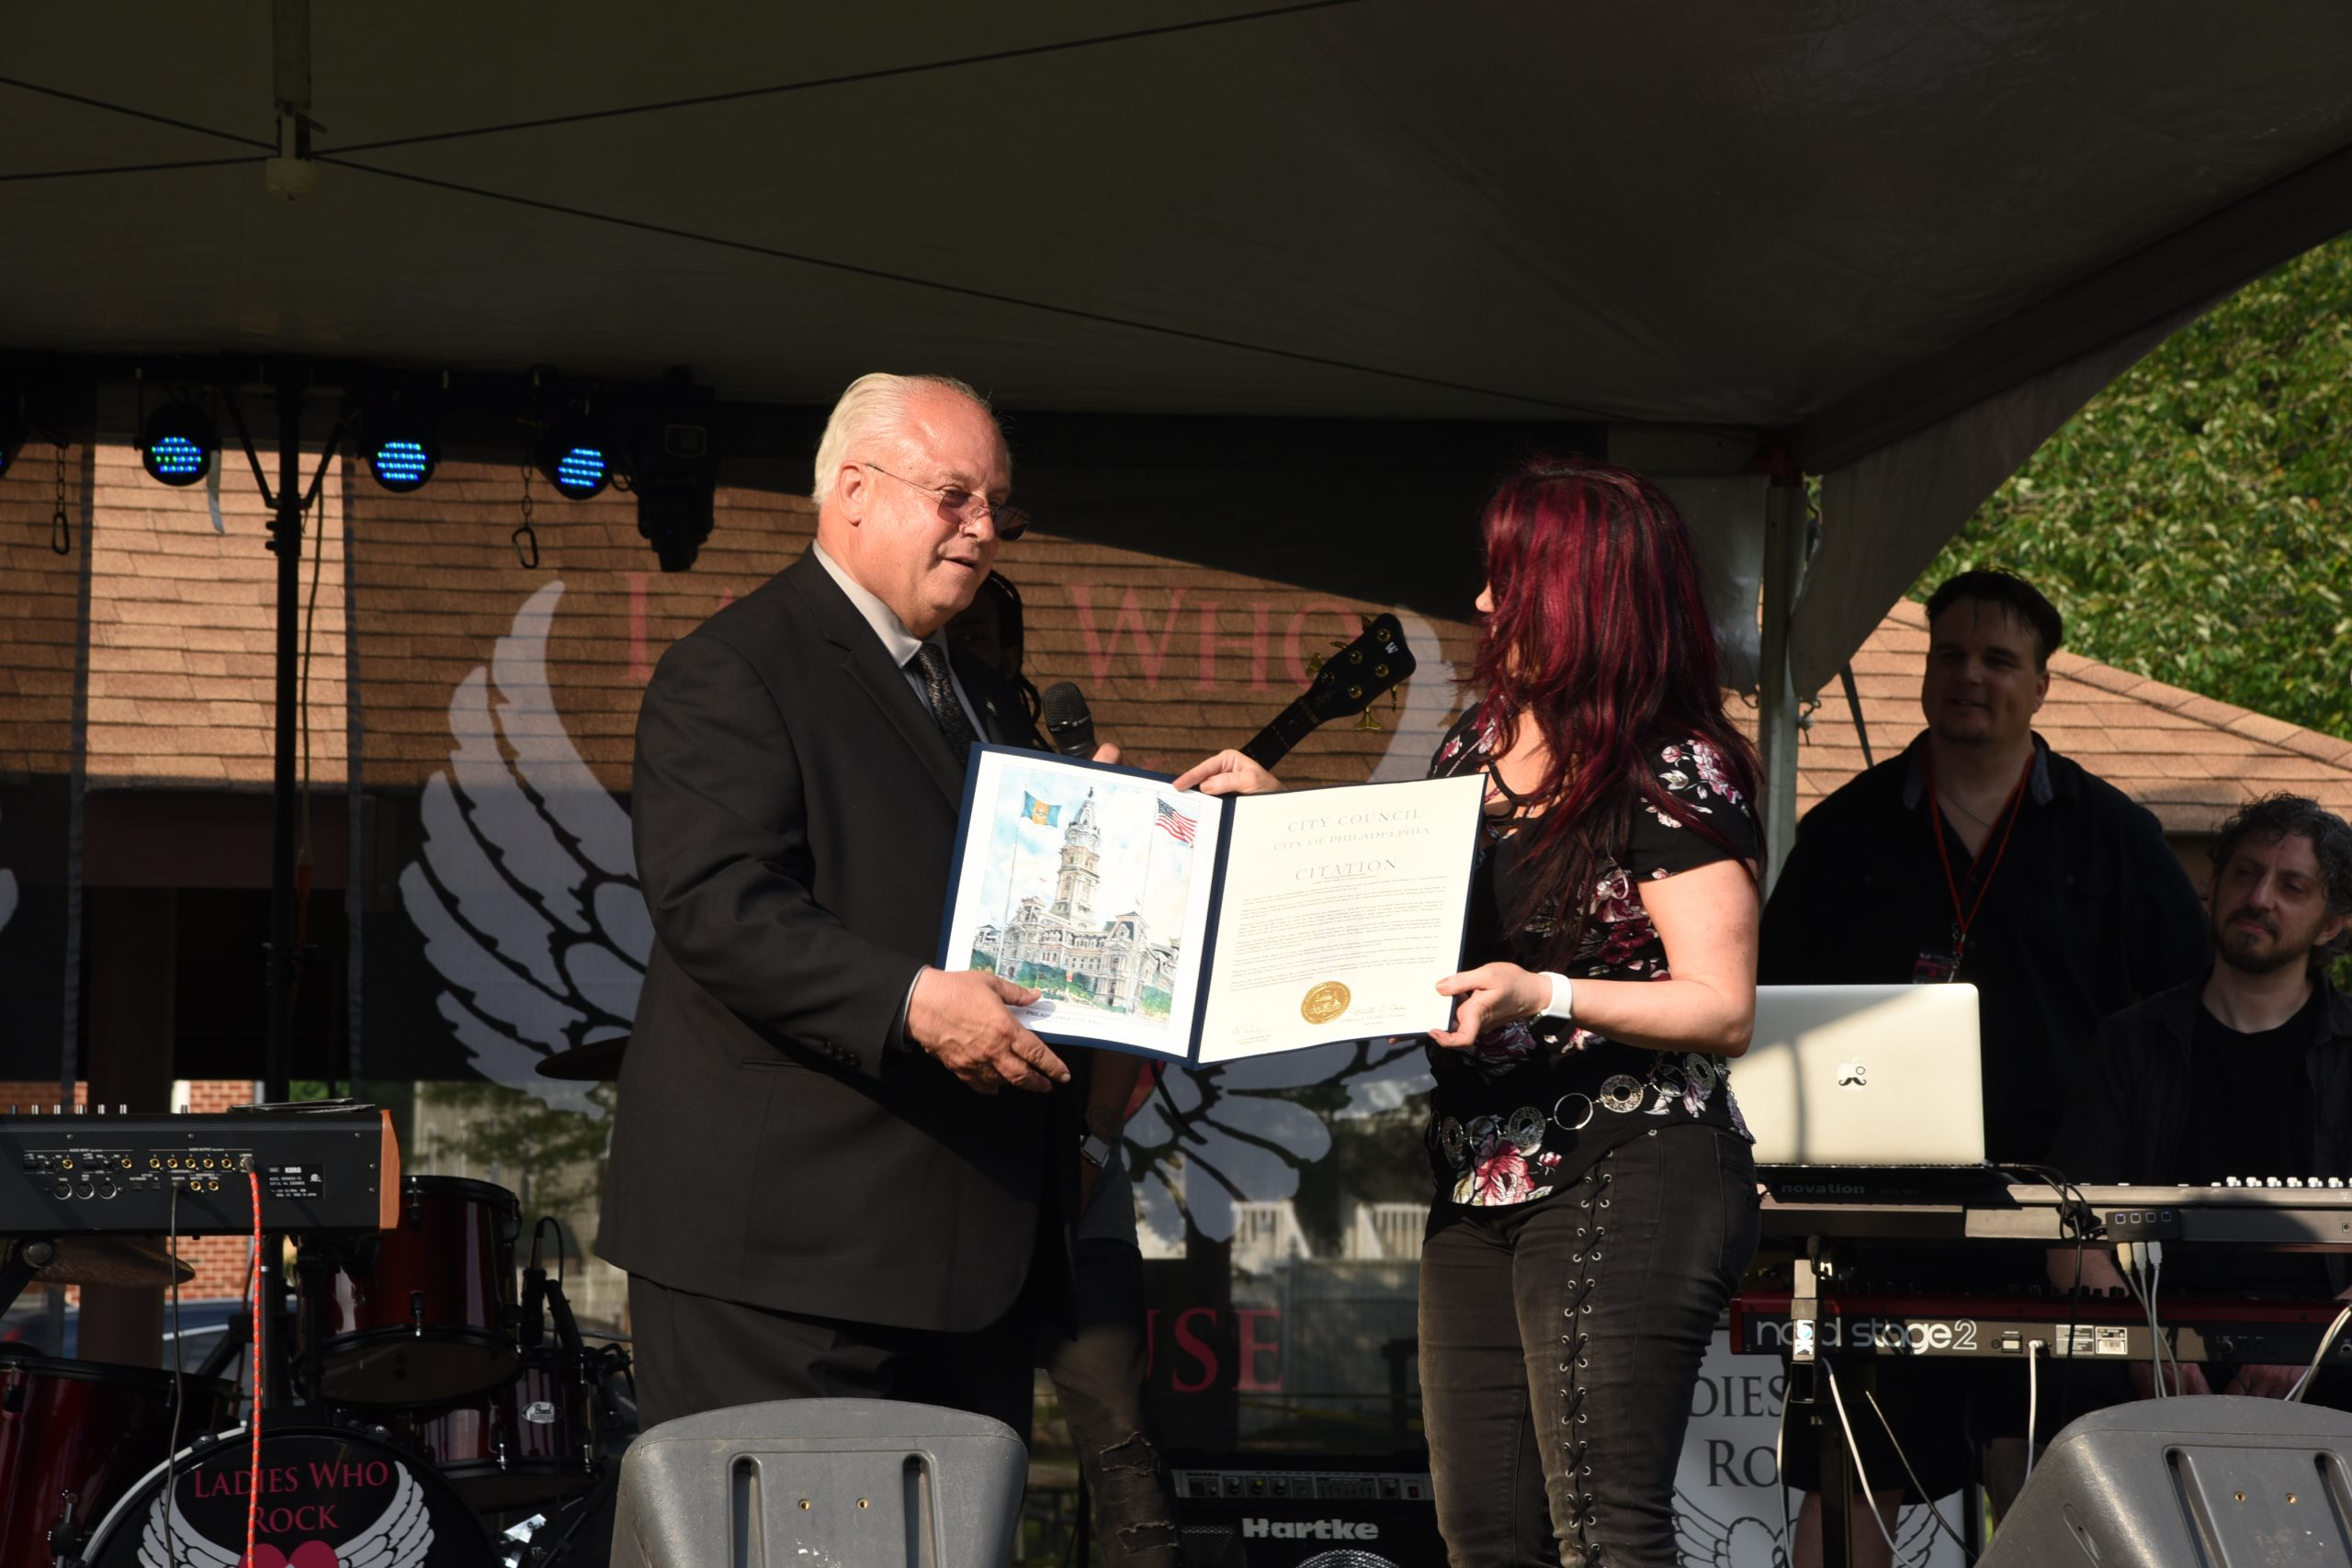 Sharon Lia Pres & CEO being presented with a commendation for the work of LWRFAC, from Philadelphia city councilman-at-large Al Taubenberger at 2018 Festival.